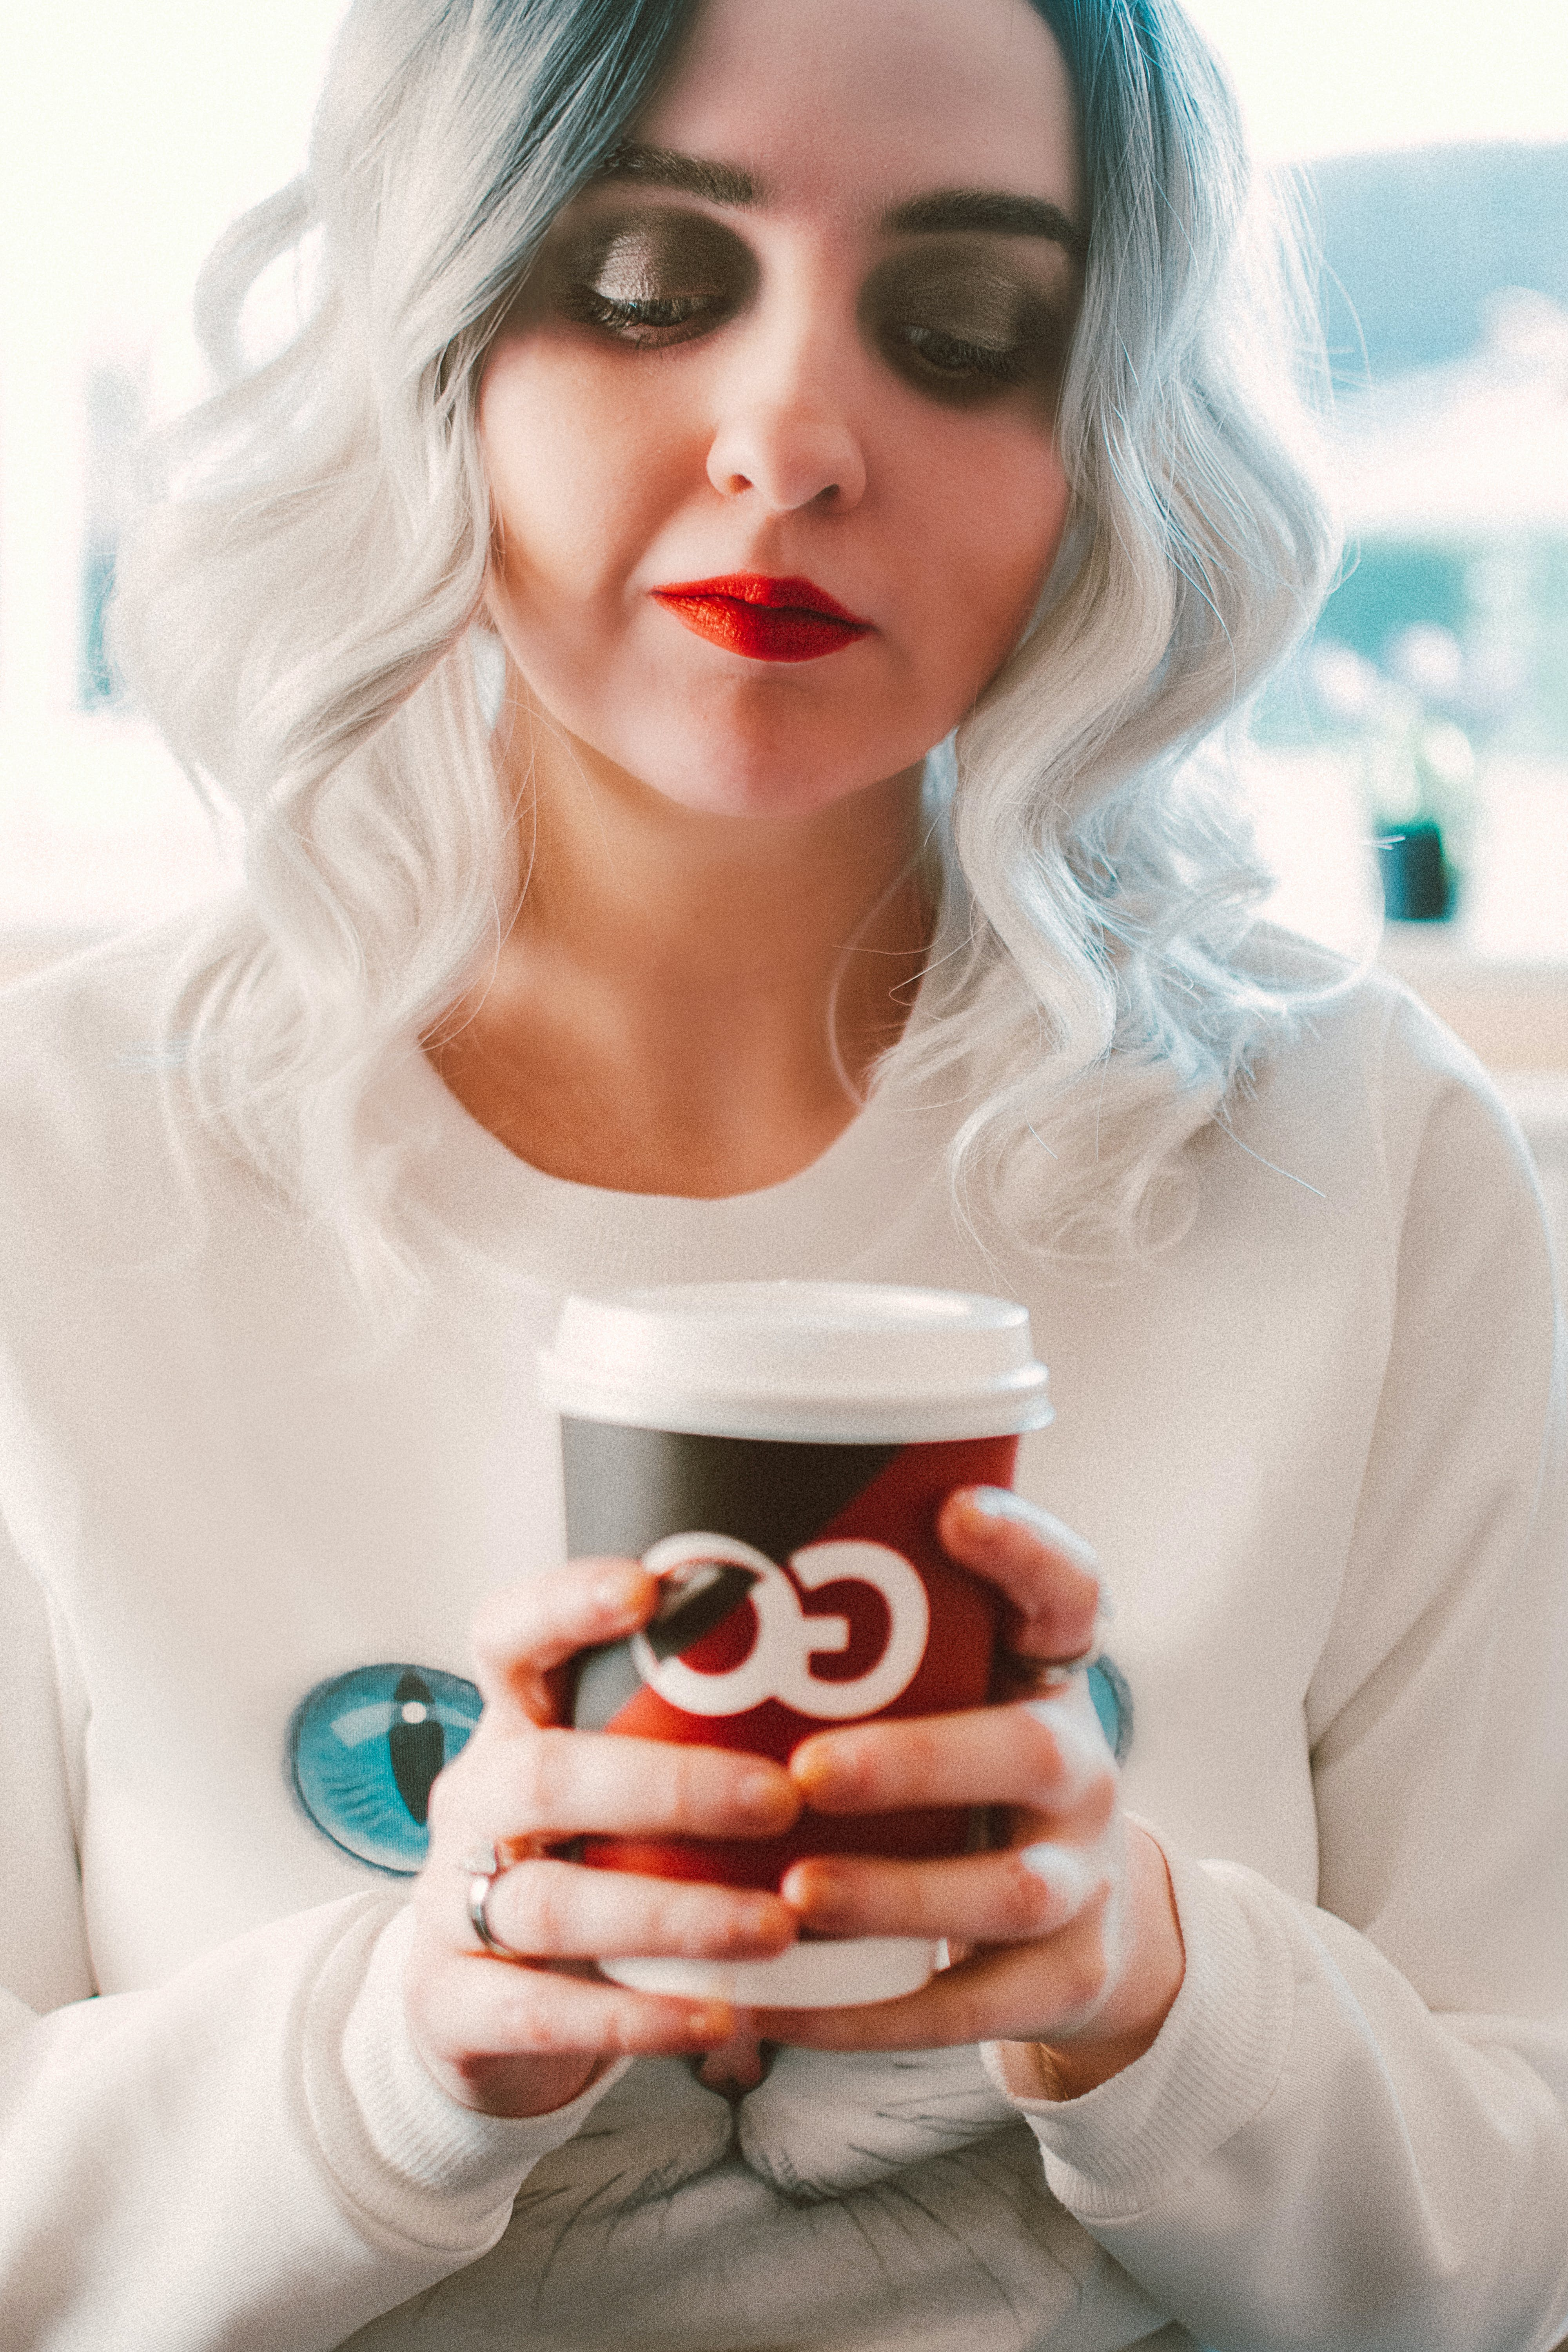 Woman Wearing White Crew-neck Sweater Holding White Go Disposable Cup